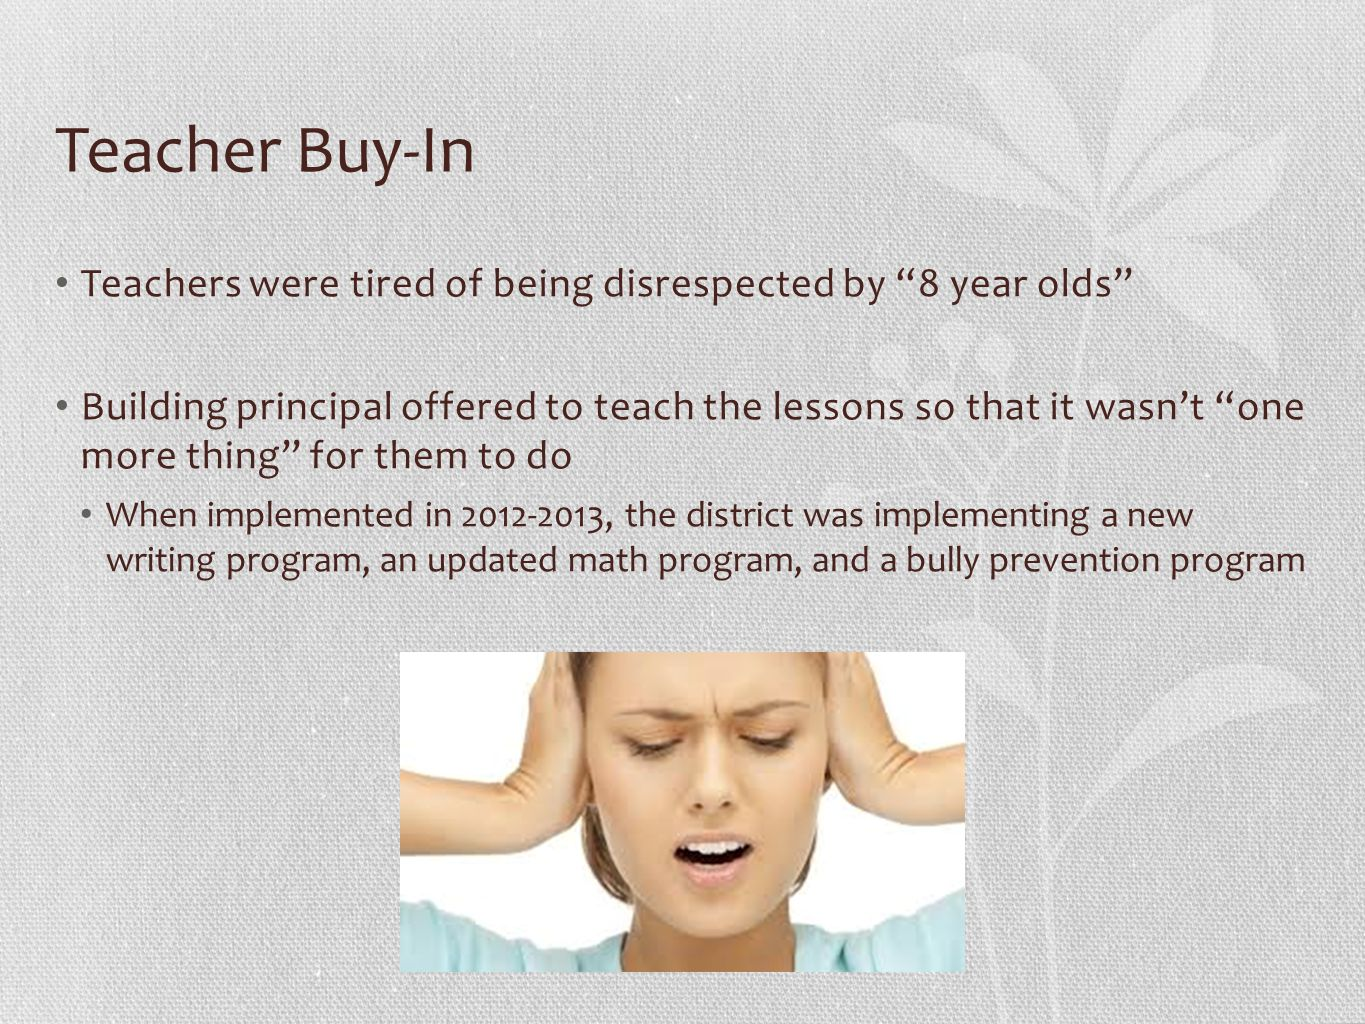 Teacher Buy-In Teachers were tired of being disrespected by 8 year olds Building principal offered to teach the lessons so that it wasn't one more thing for them to do When implemented in 2012-2013, the district was implementing a new writing program, an updated math program, and a bully prevention program